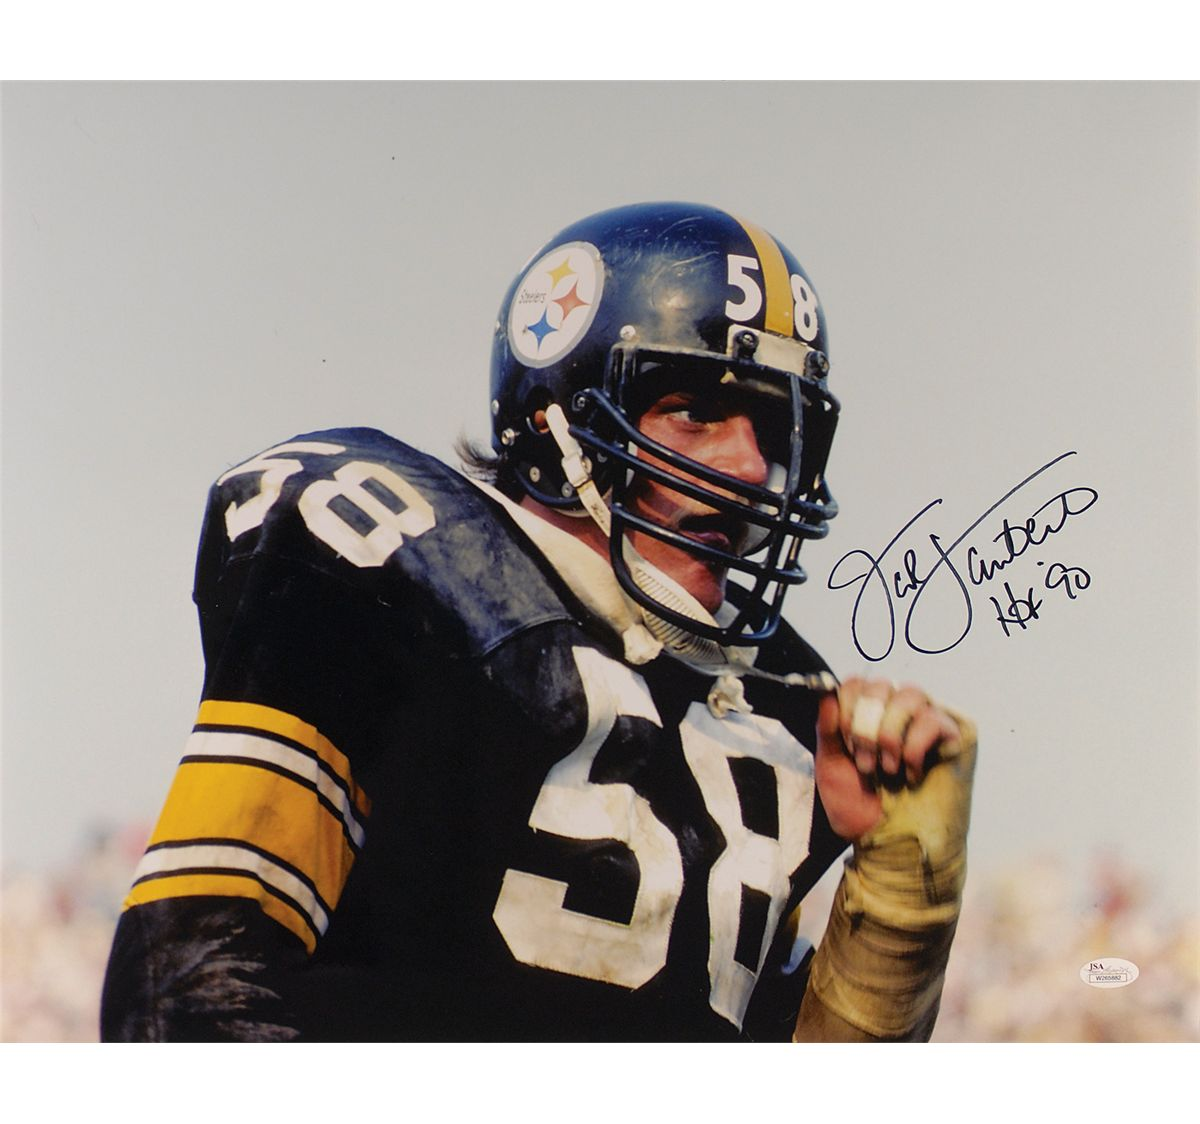 jack lambert jersey authenticjack lambert facebook, jack lambert, jack lambert steelers, jack lambert today, jack lambert actor, jack lambert jersey, jack lambert highlights, jack lambert quotes, jack lambert stats, jack lambert net worth, jack lambert hall of fame speech, jack lambert hits, jack lambert cliff harris youtube, jack lambert pictures, jack lambert images, jack lambert nickname, jack lambert jersey authentic, jack lambert game warden